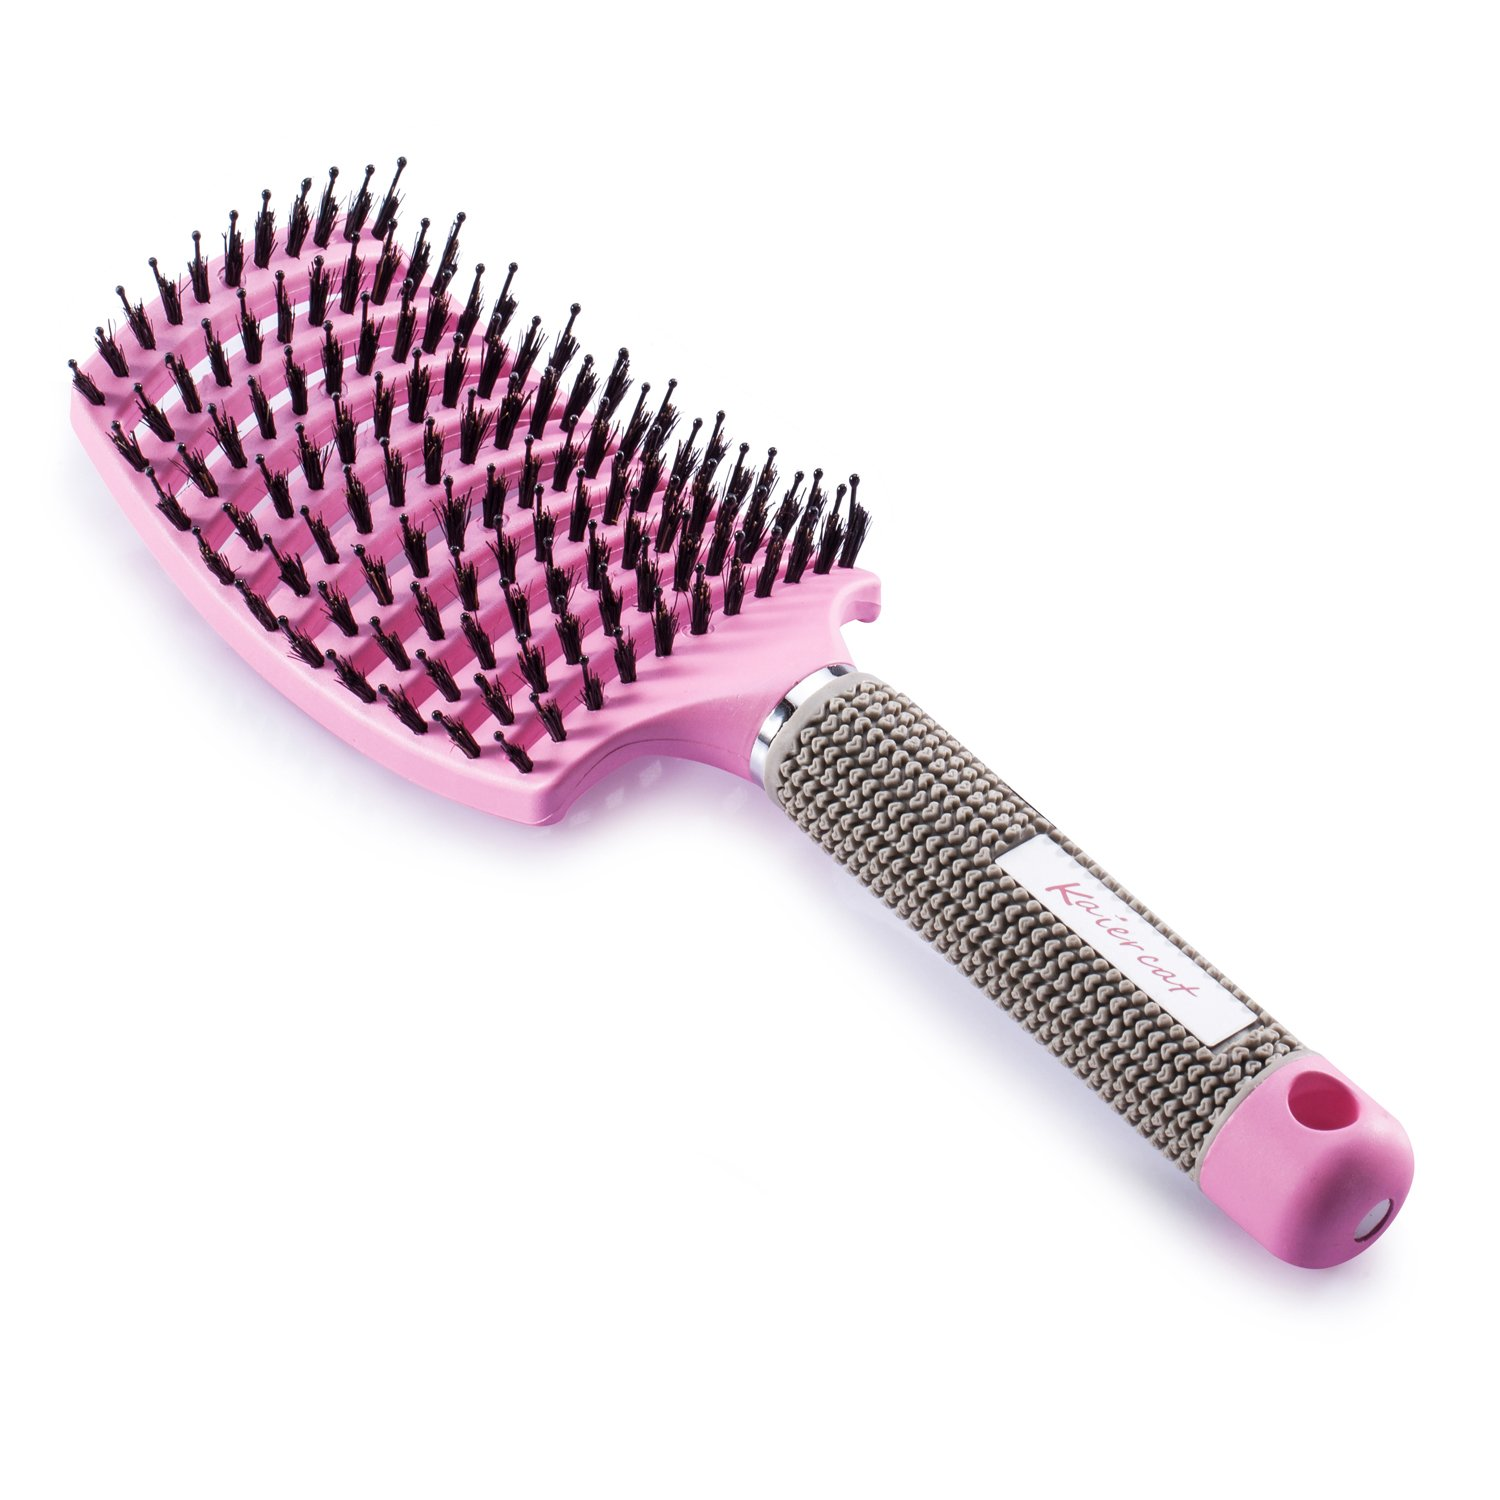 Kaiercat Boar Bristle Brush for Detangling Thick Hair - Pink